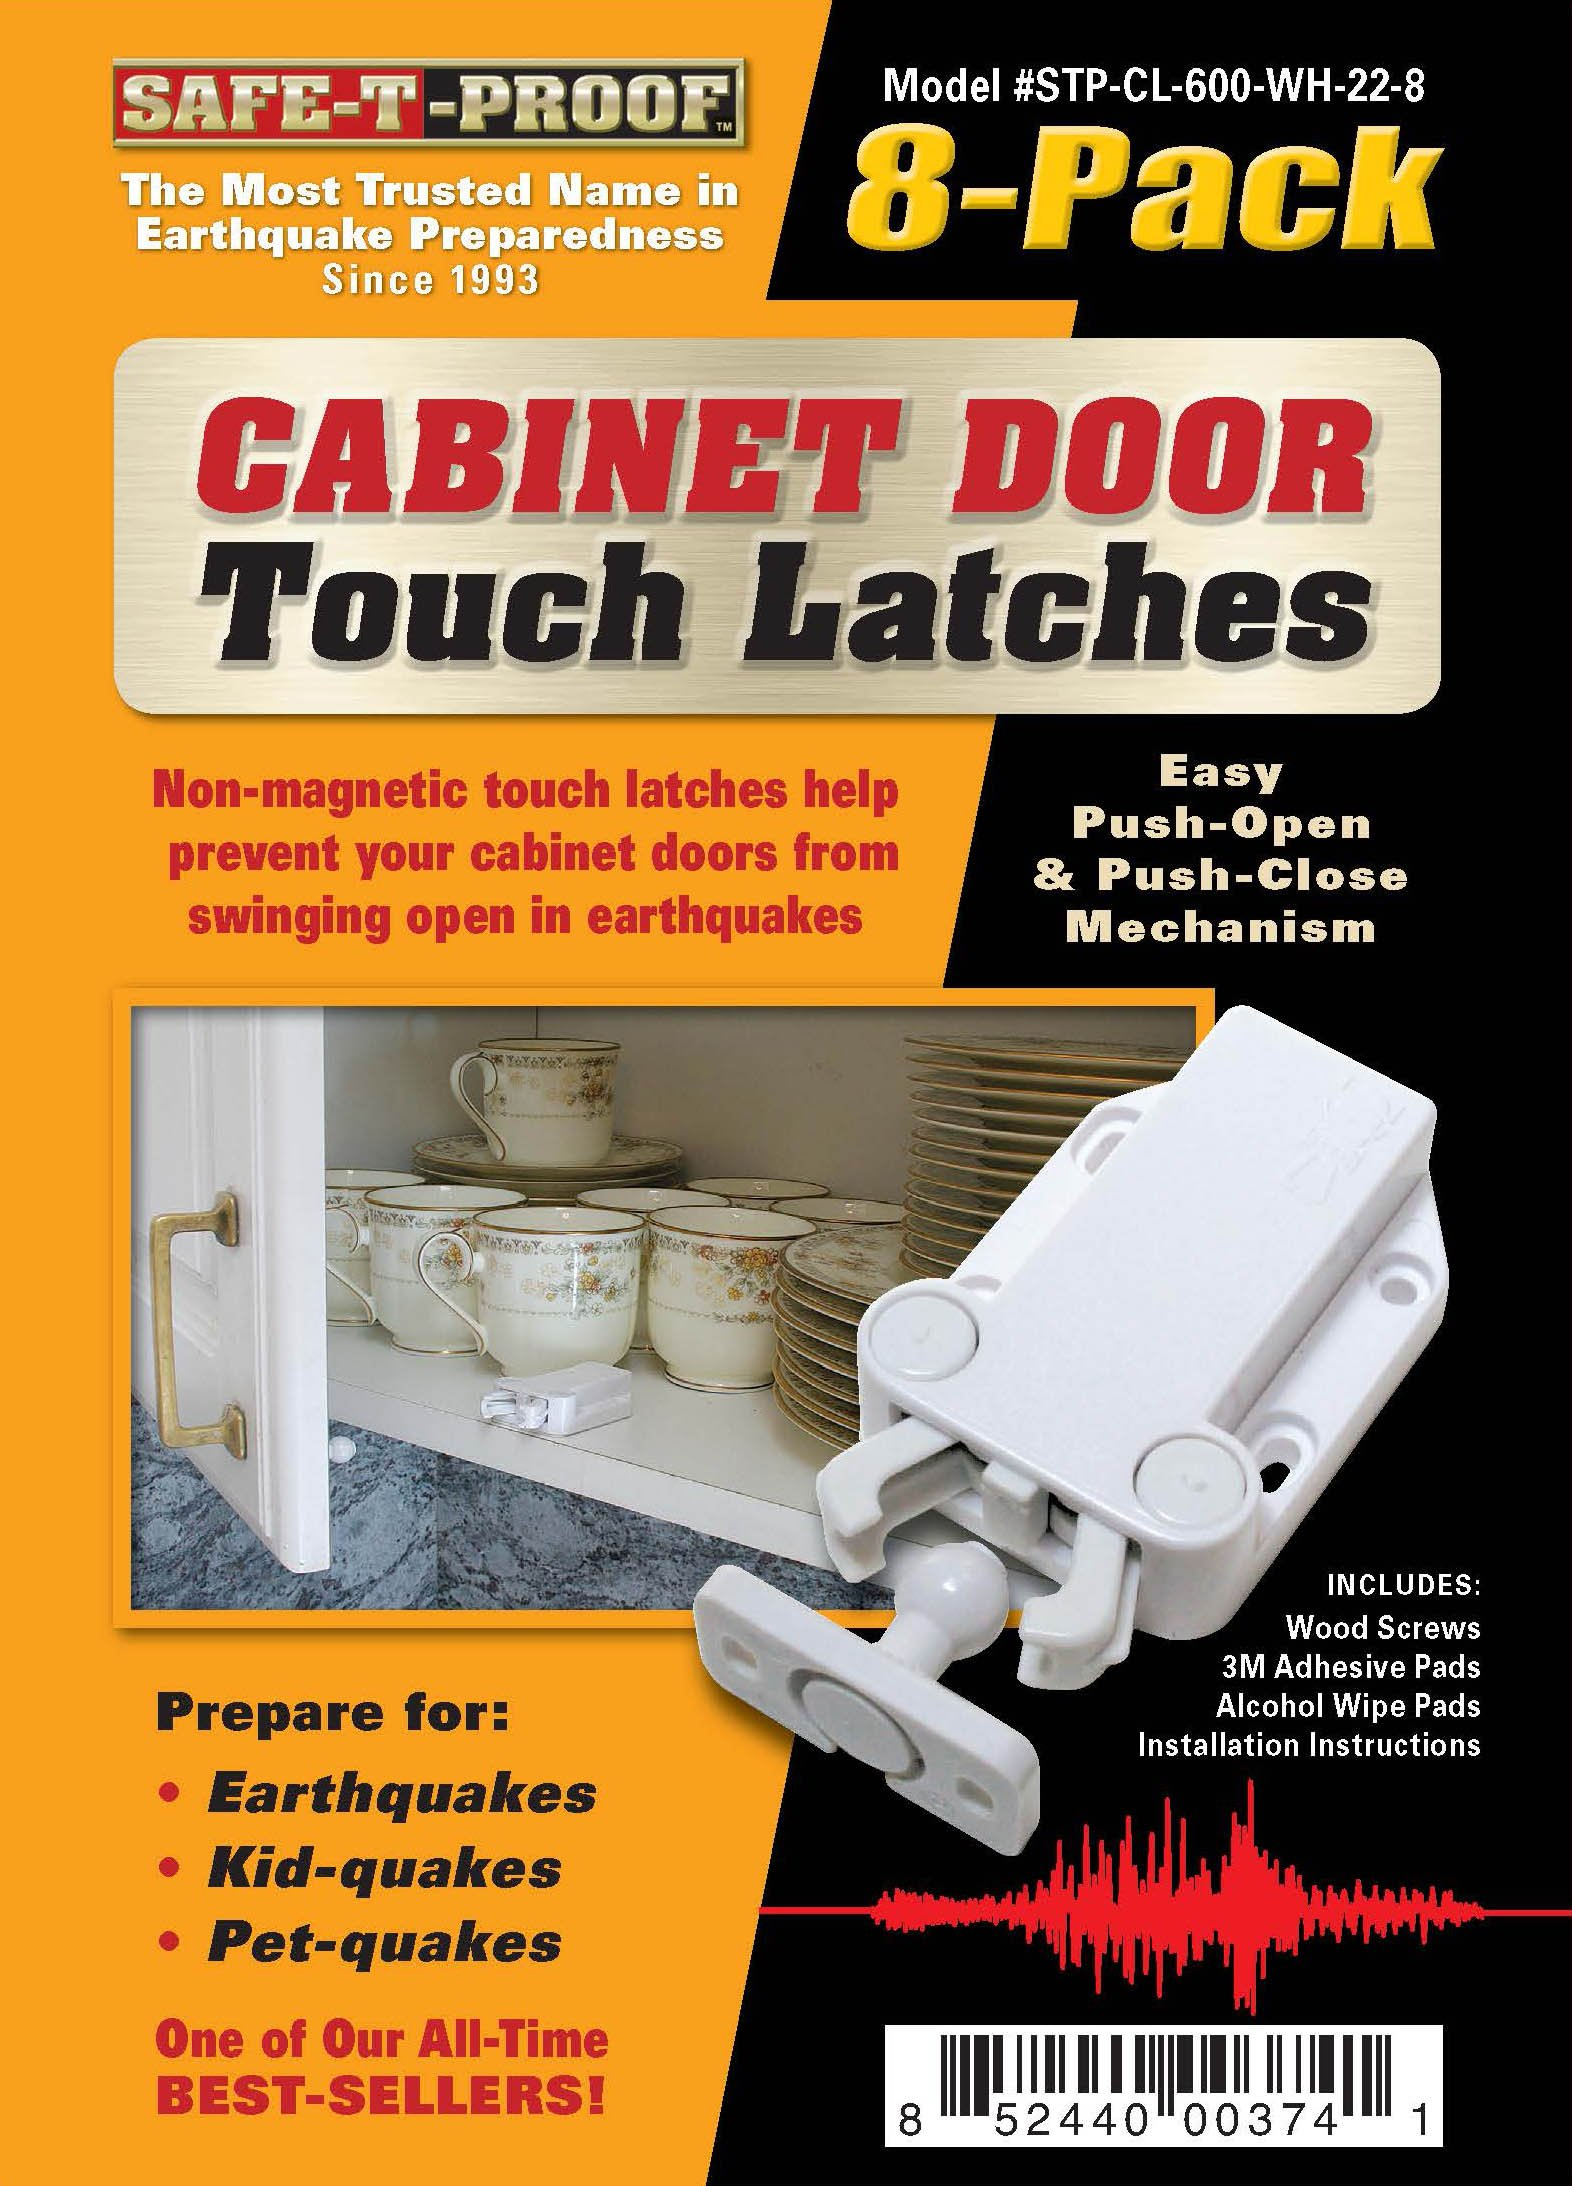 Safe-T-Proof STP-CL-600-WH-2208 Cabinet Door Touch Latches (Pack of 8), White by Safe-T-Proof